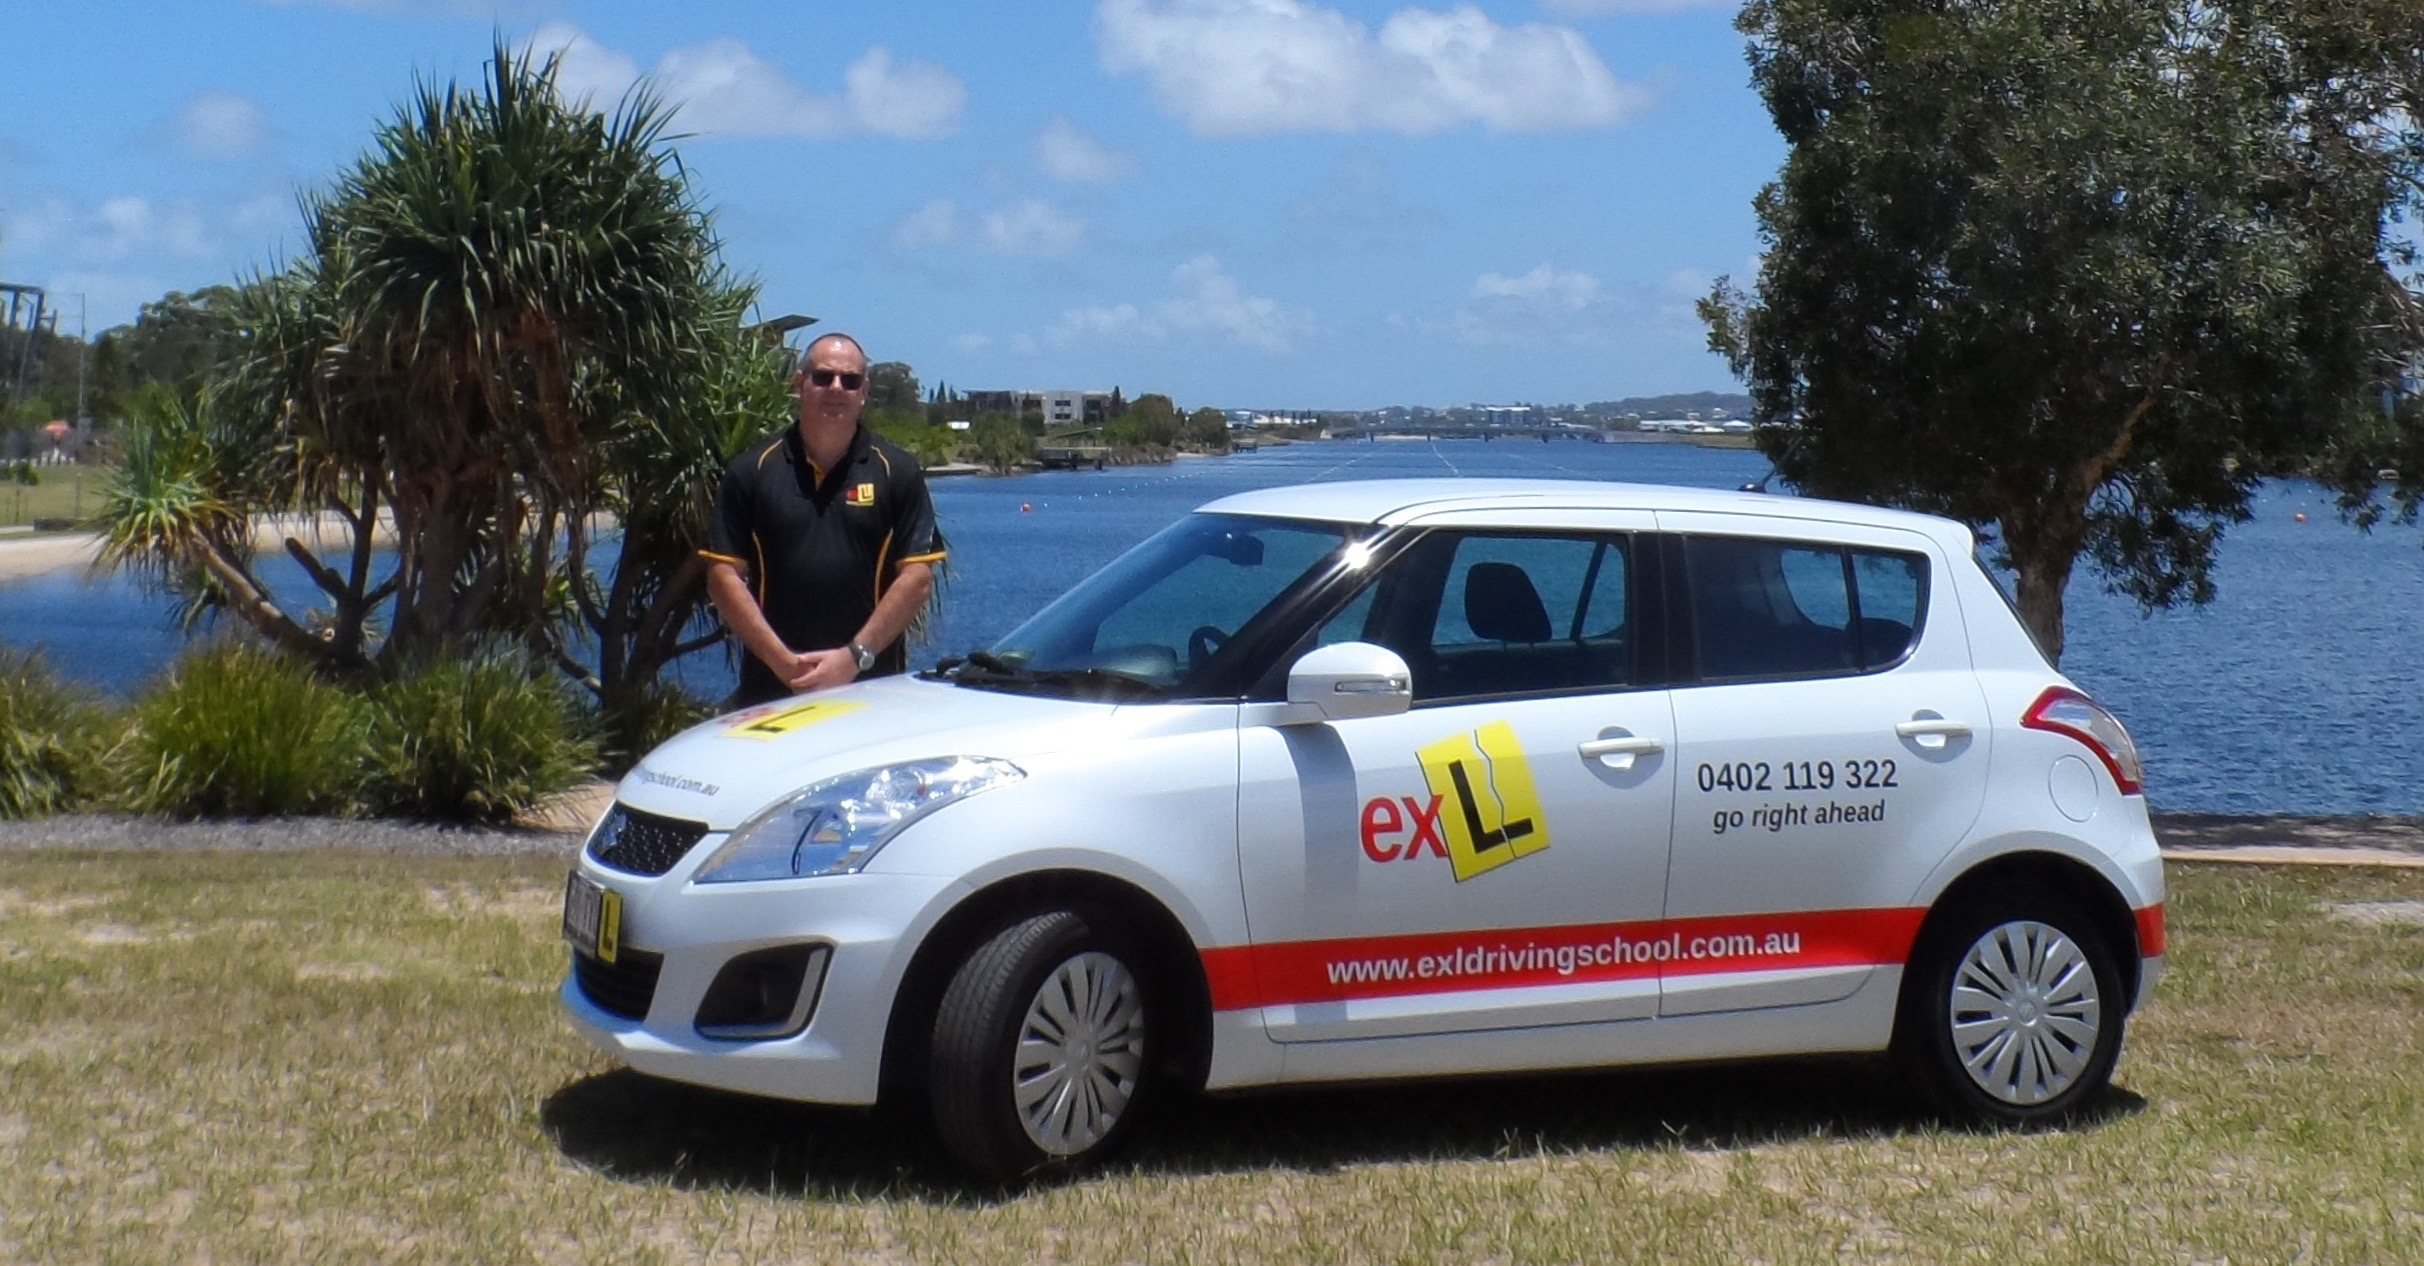 exl driving school about us